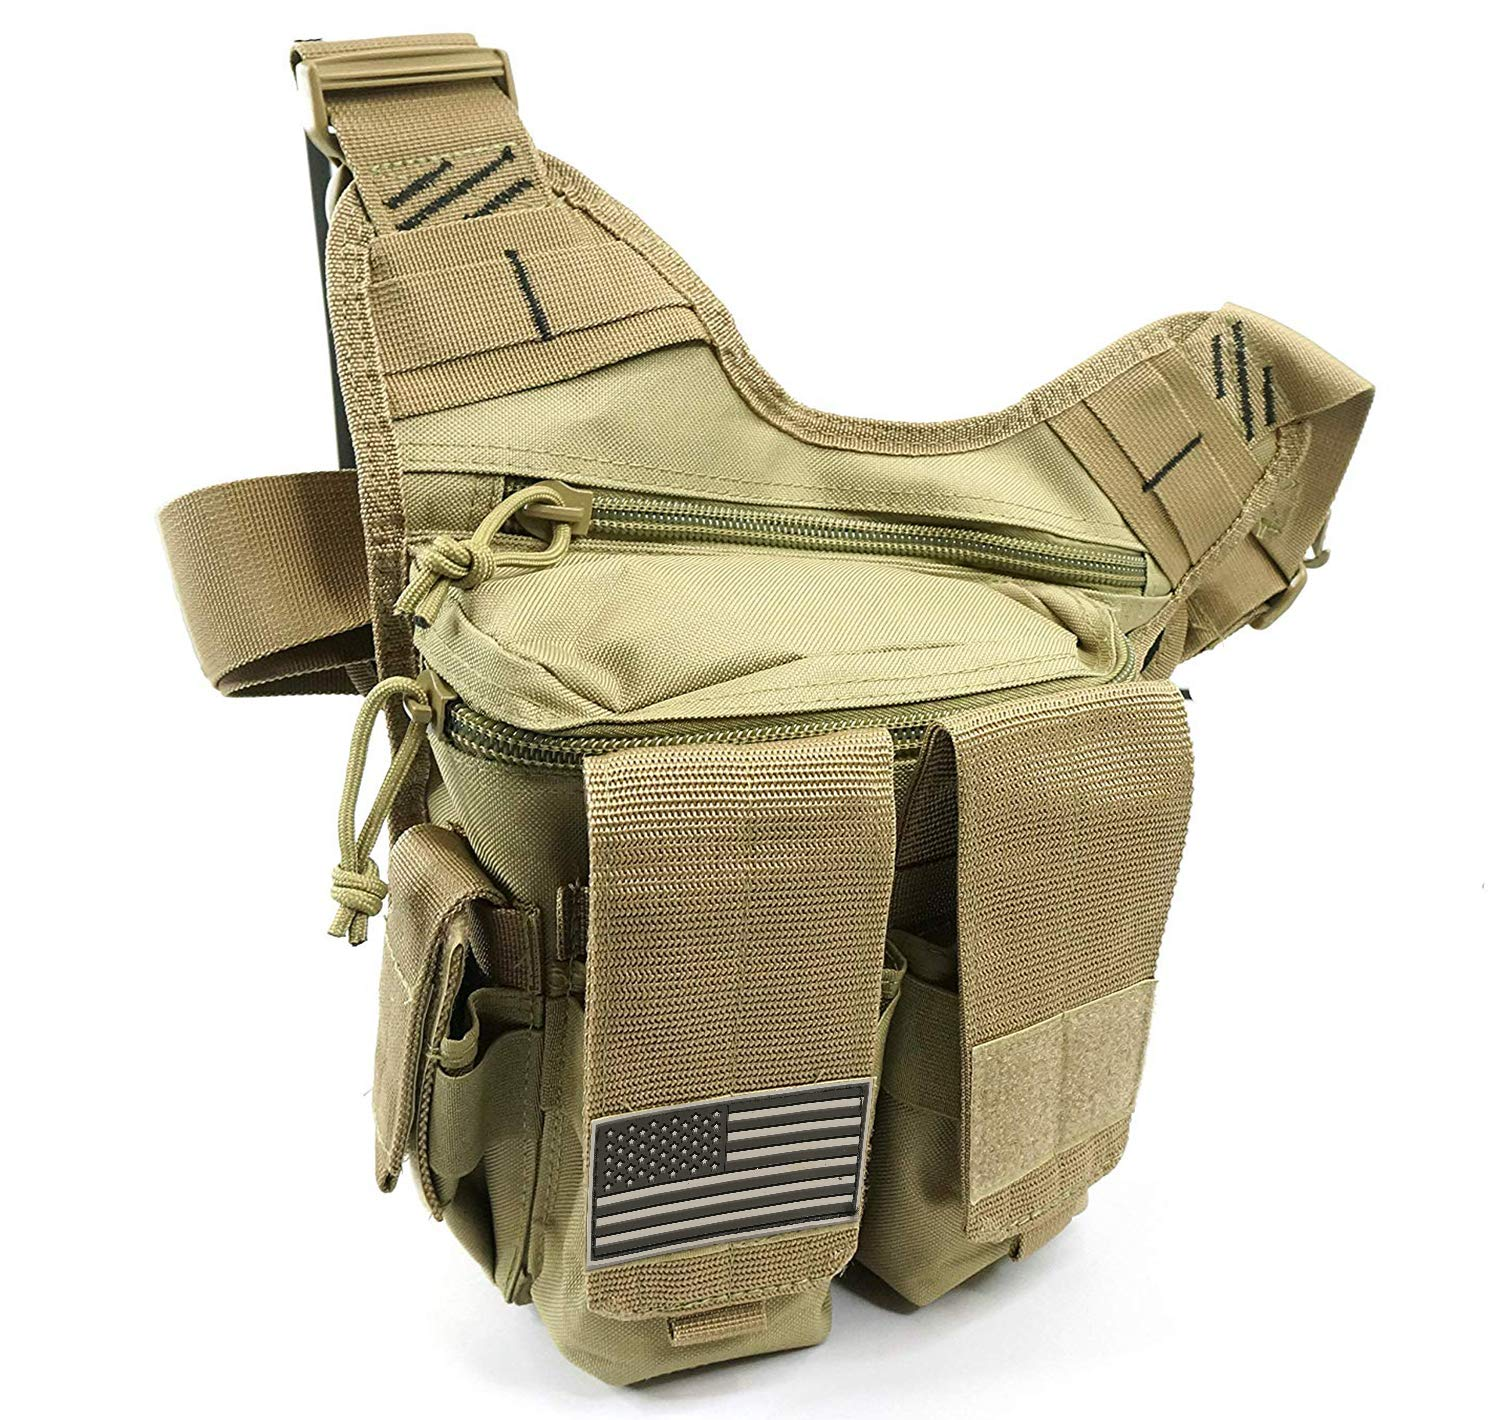 NiceAndGreat Tactical Bag Rapid Outdoor Range Sling Pack for Handguns and Pistols Quality Chest Pack Holster Included (Tan) by NiceAndGreat